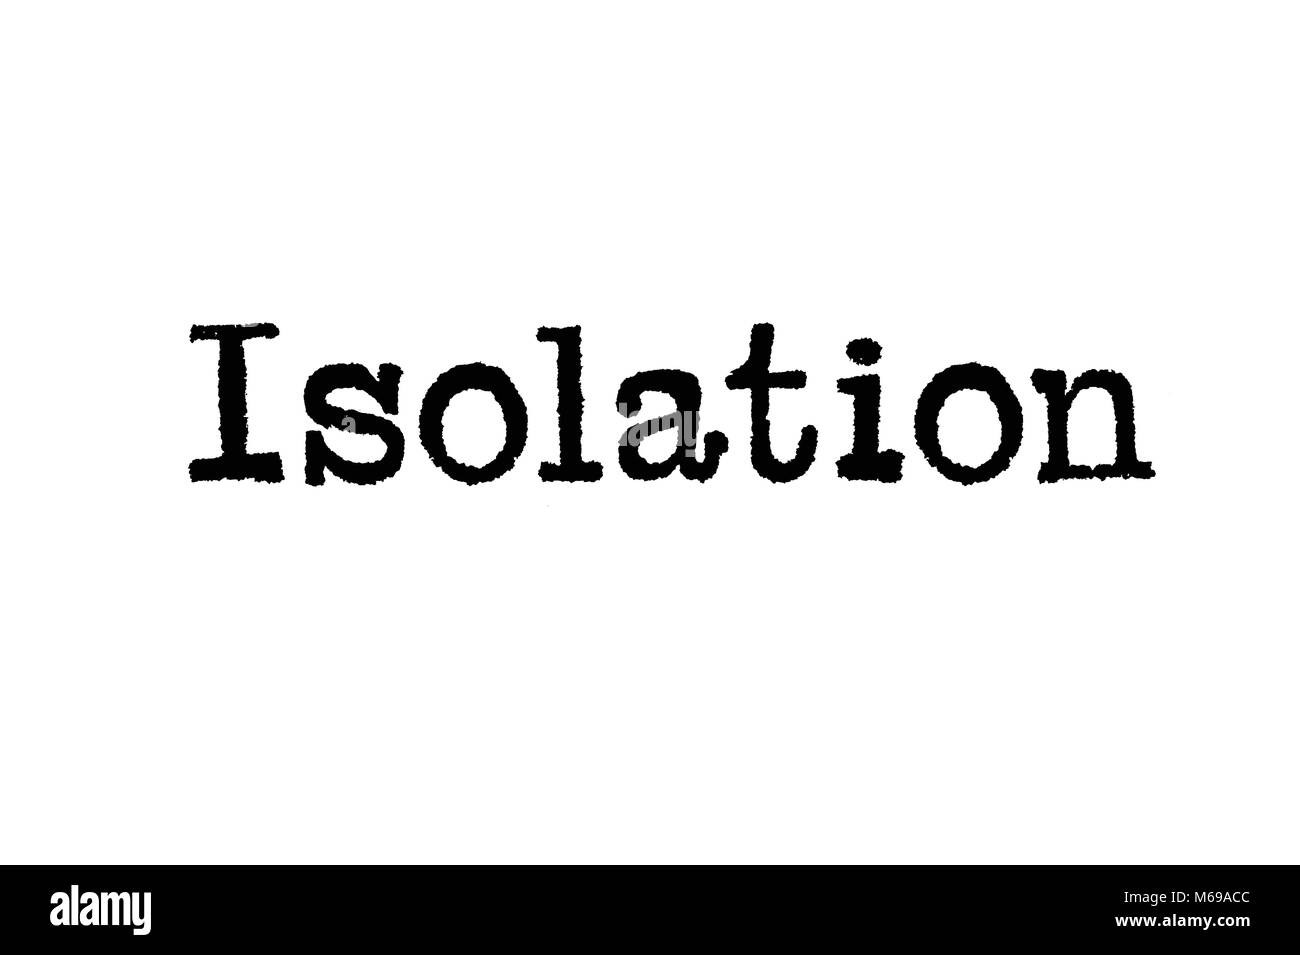 The word Isolation from a typewriter on a white background - Stock Image